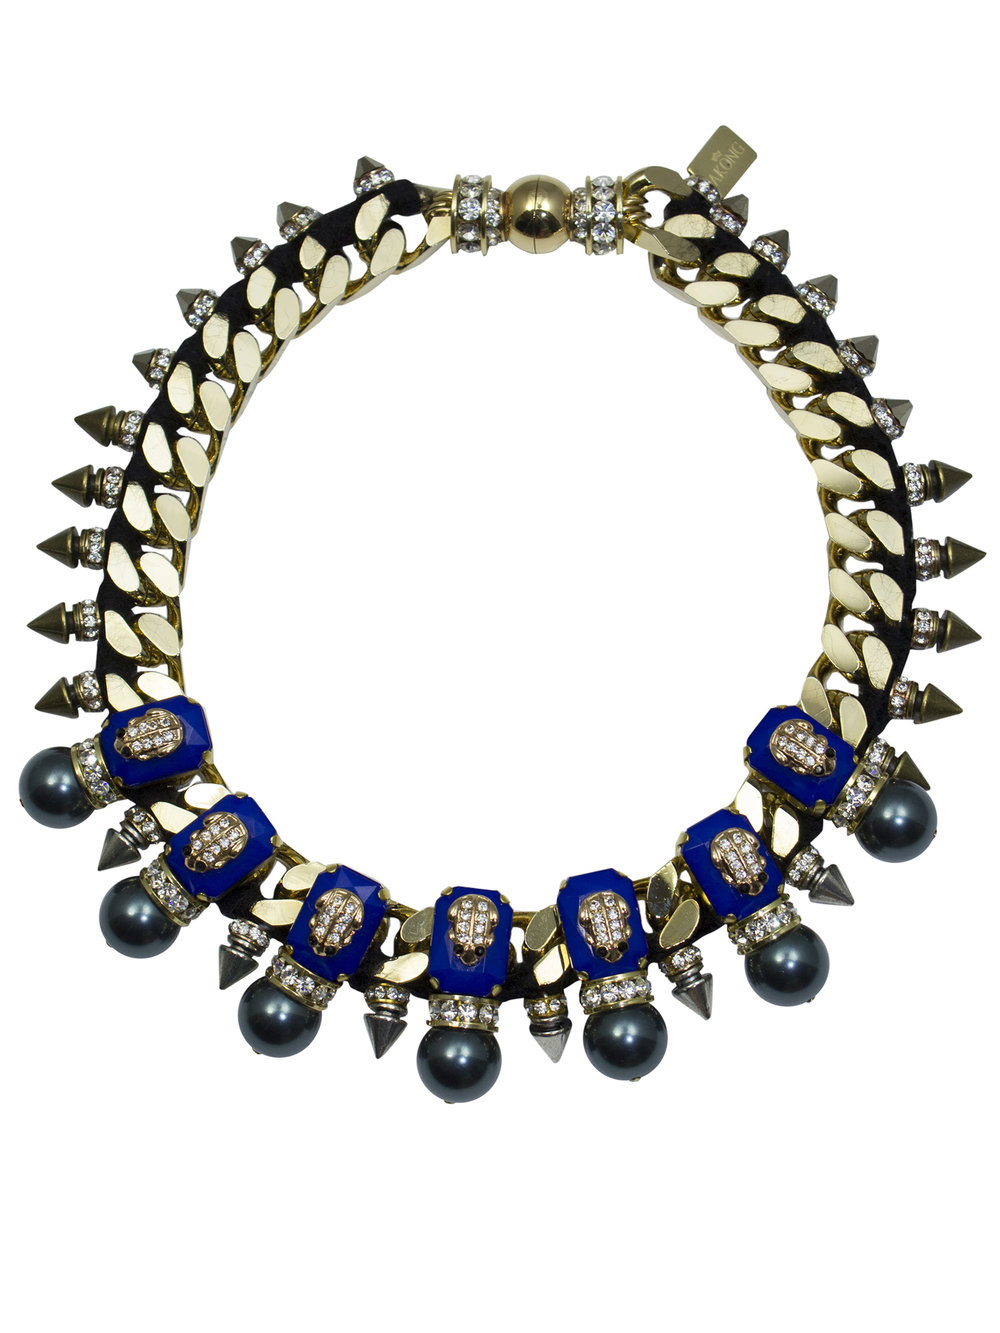 209N Blue & Gold Military Necklace.jpg